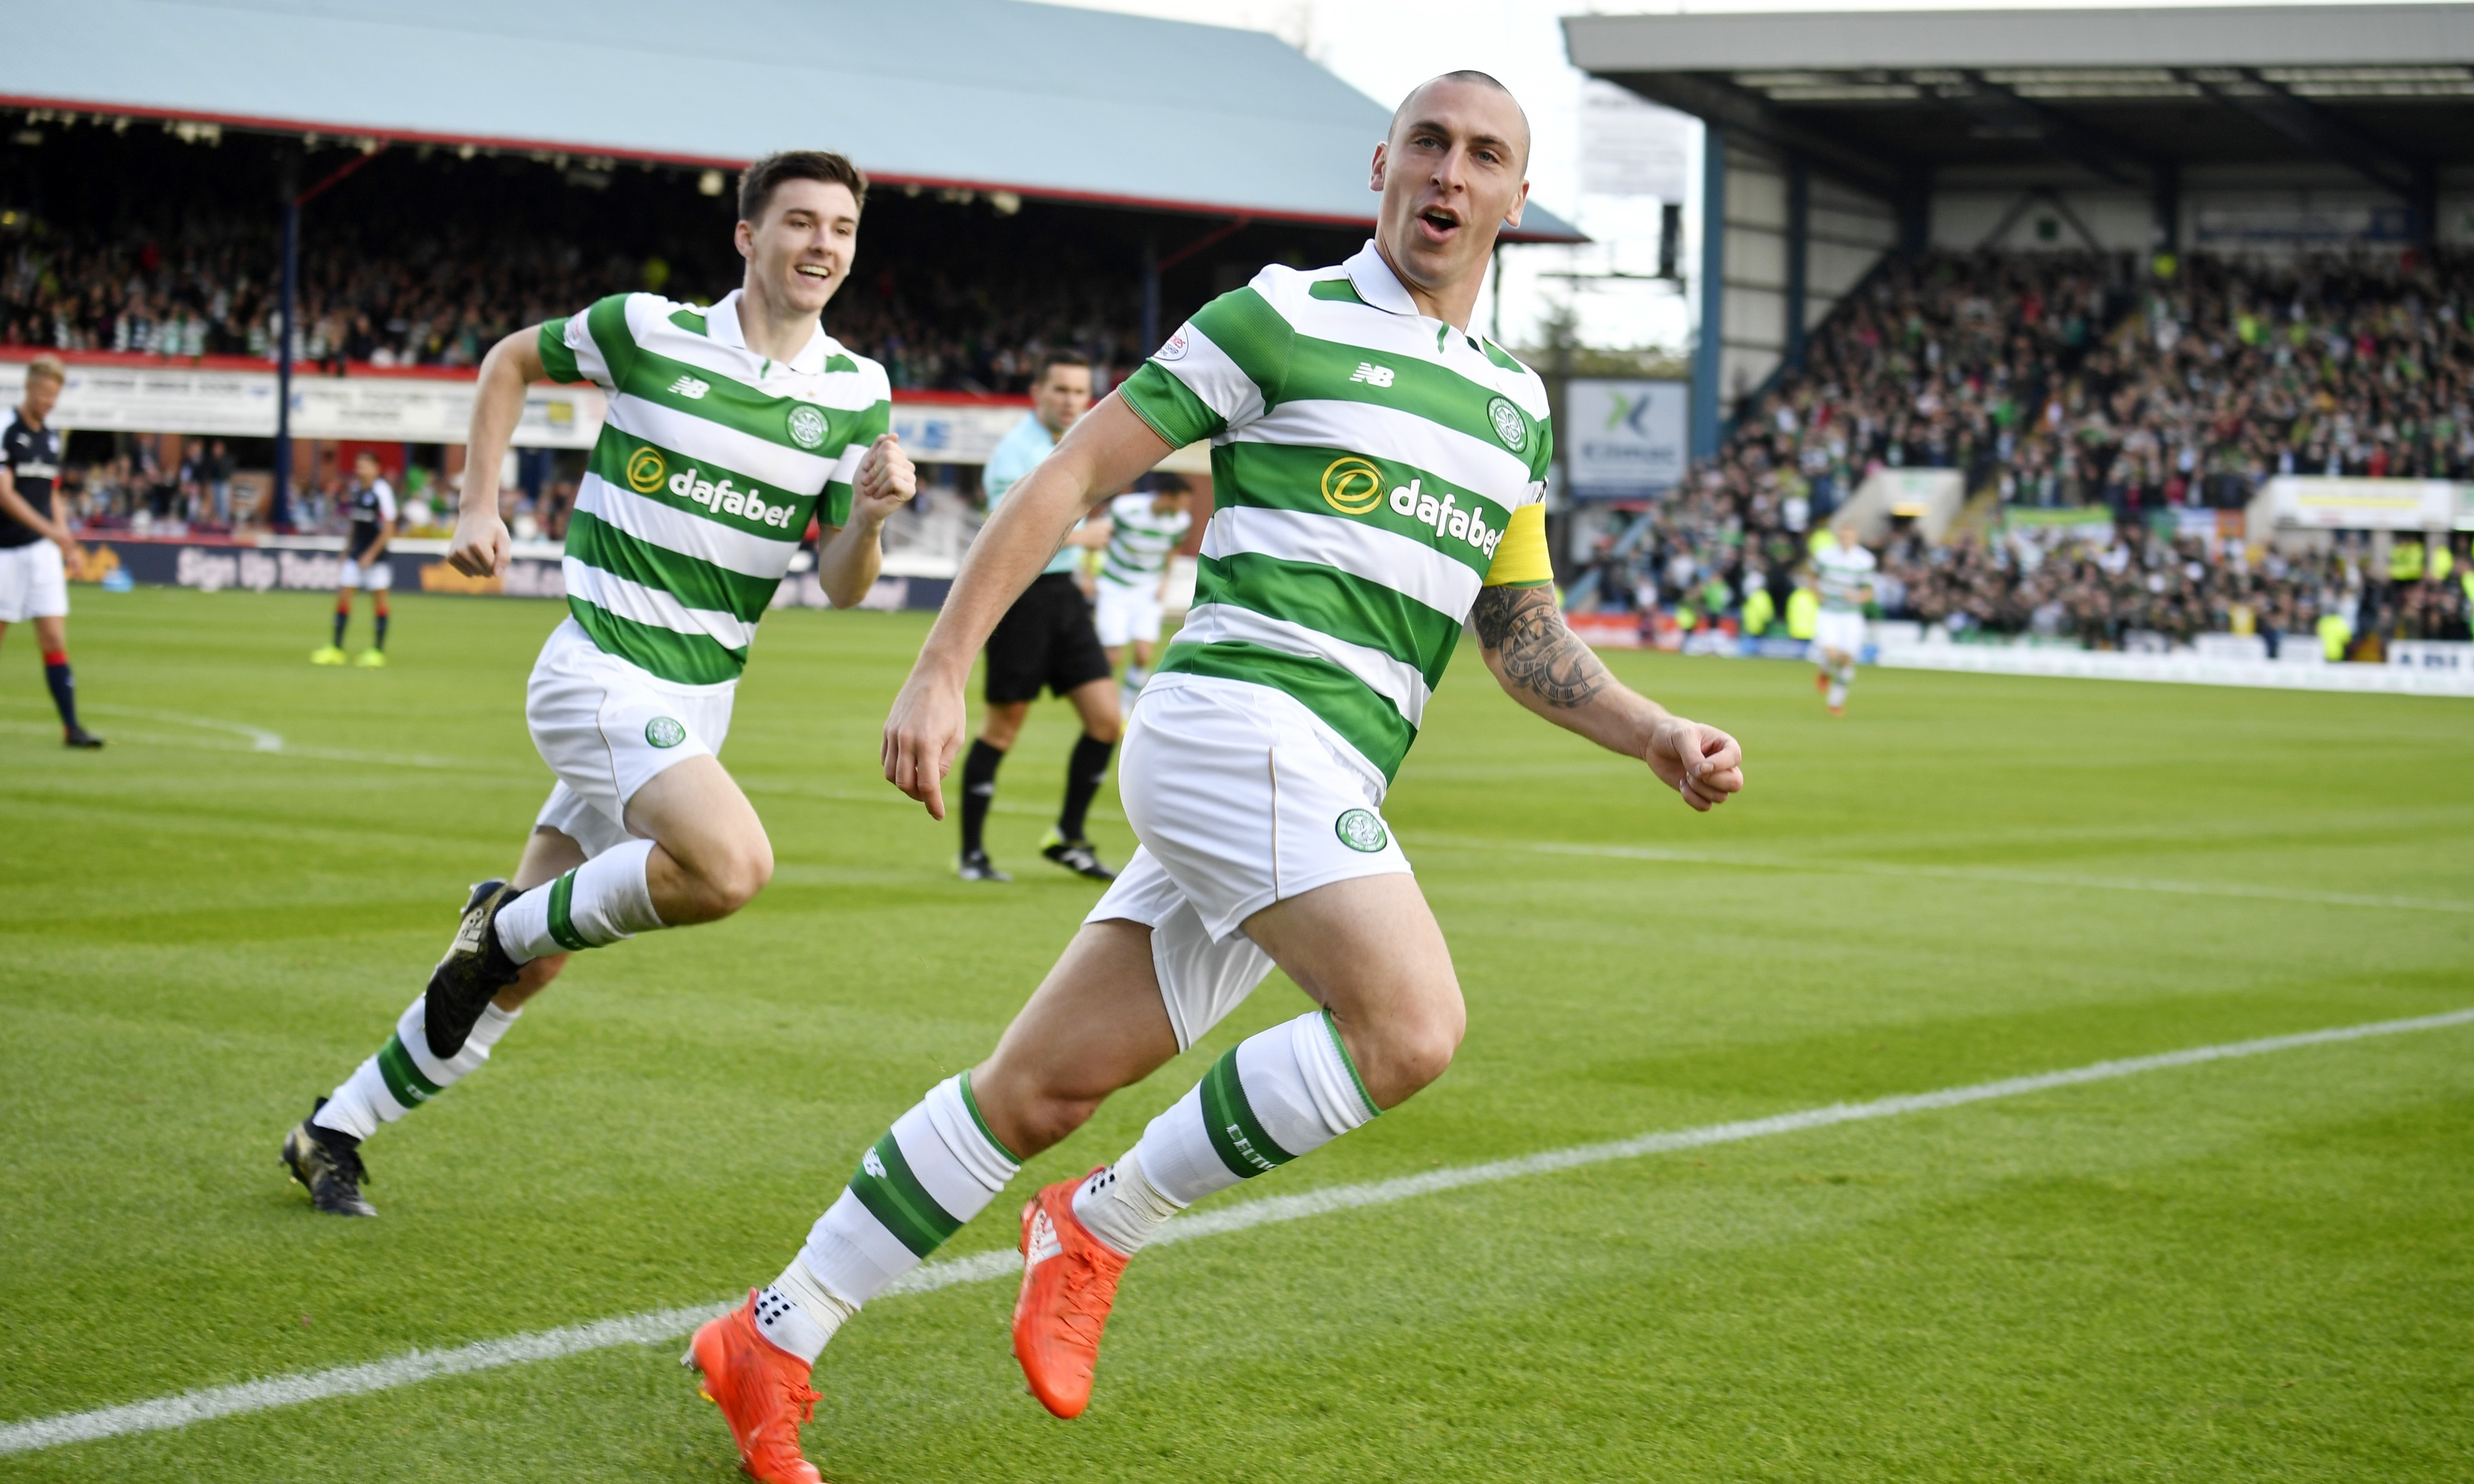 Celtic's Scott Brown celebrates having scored the only goal of the game